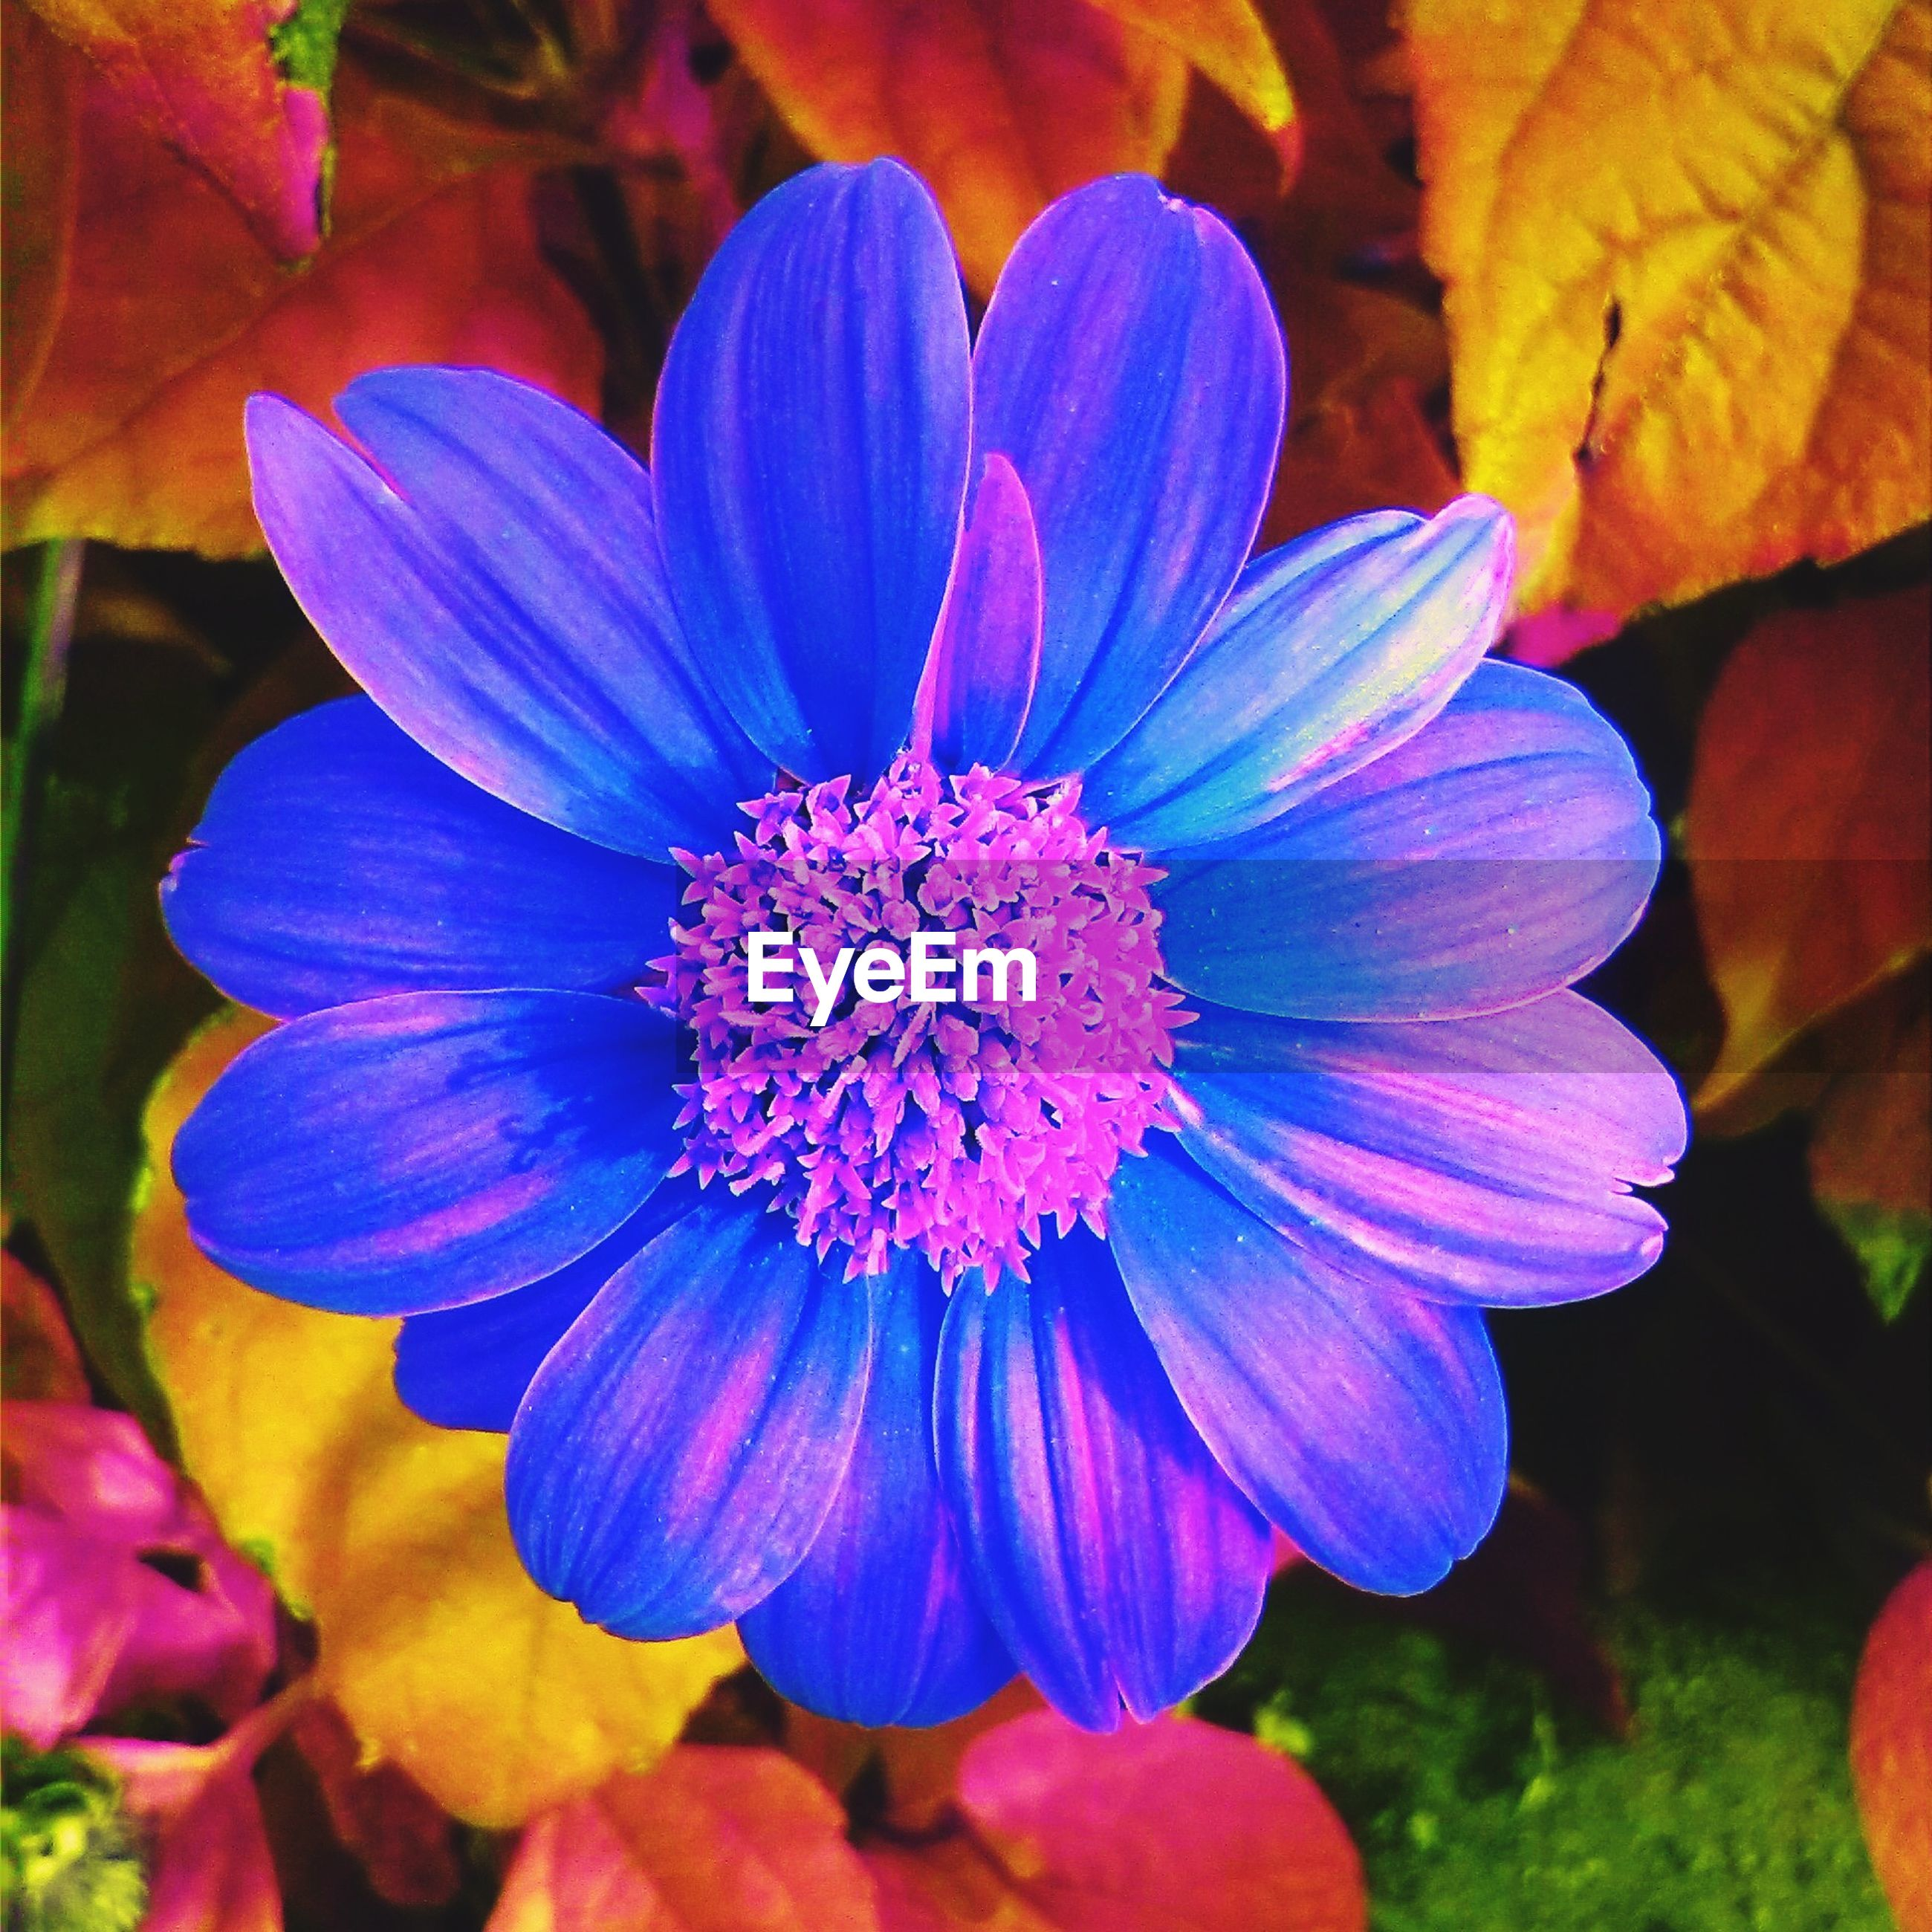 flower, petal, freshness, flower head, fragility, growth, beauty in nature, purple, close-up, blooming, pollen, nature, plant, focus on foreground, single flower, in bloom, stamen, blossom, outdoors, blue